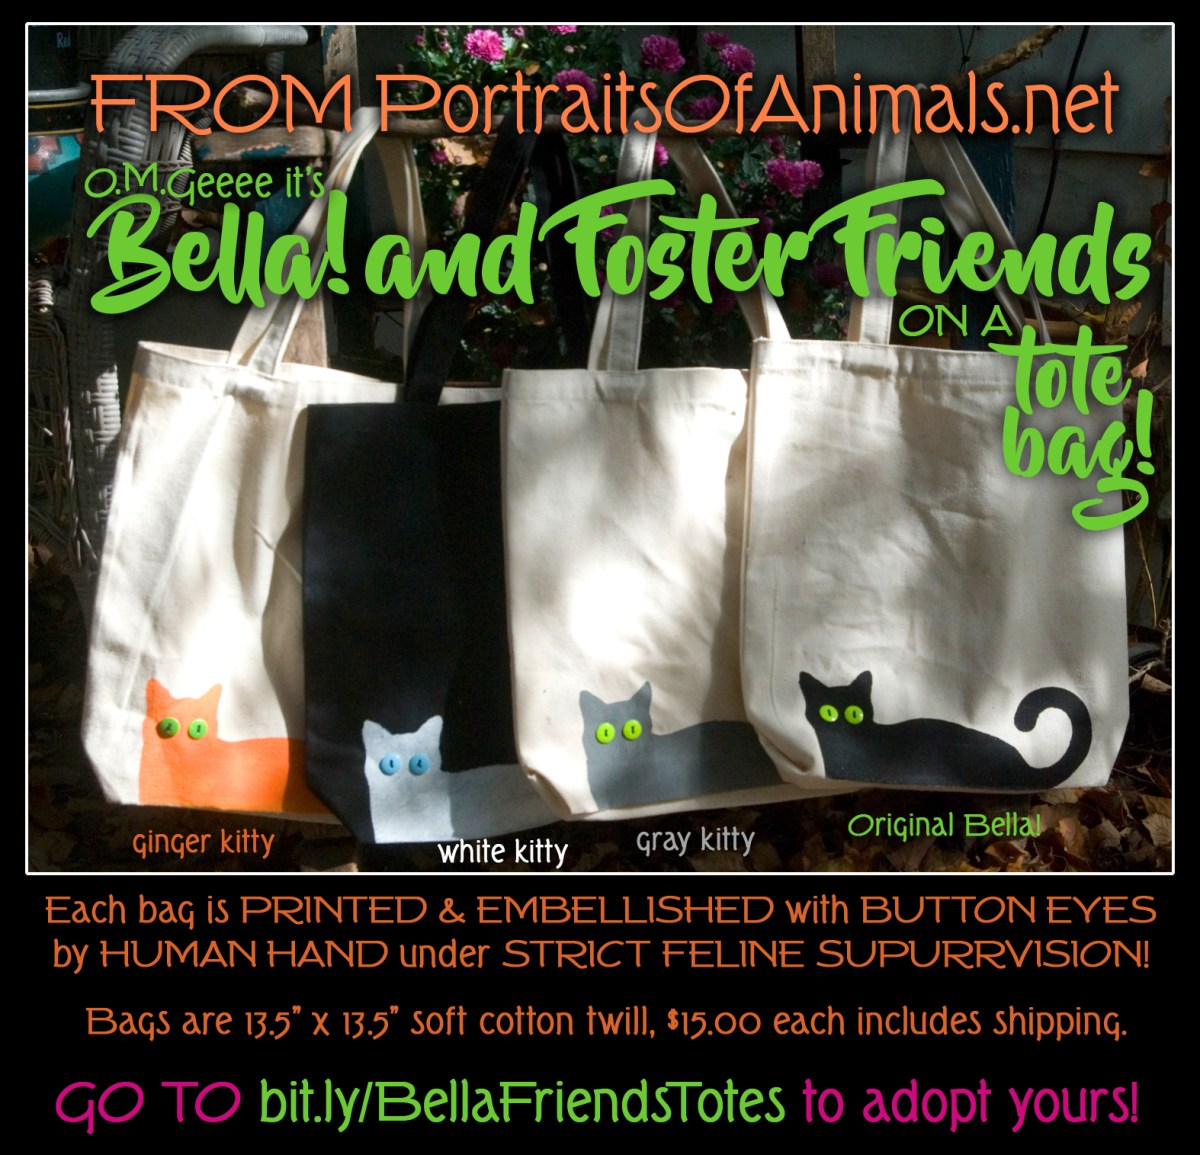 Bella! and Her Foster Friends Tote Bags